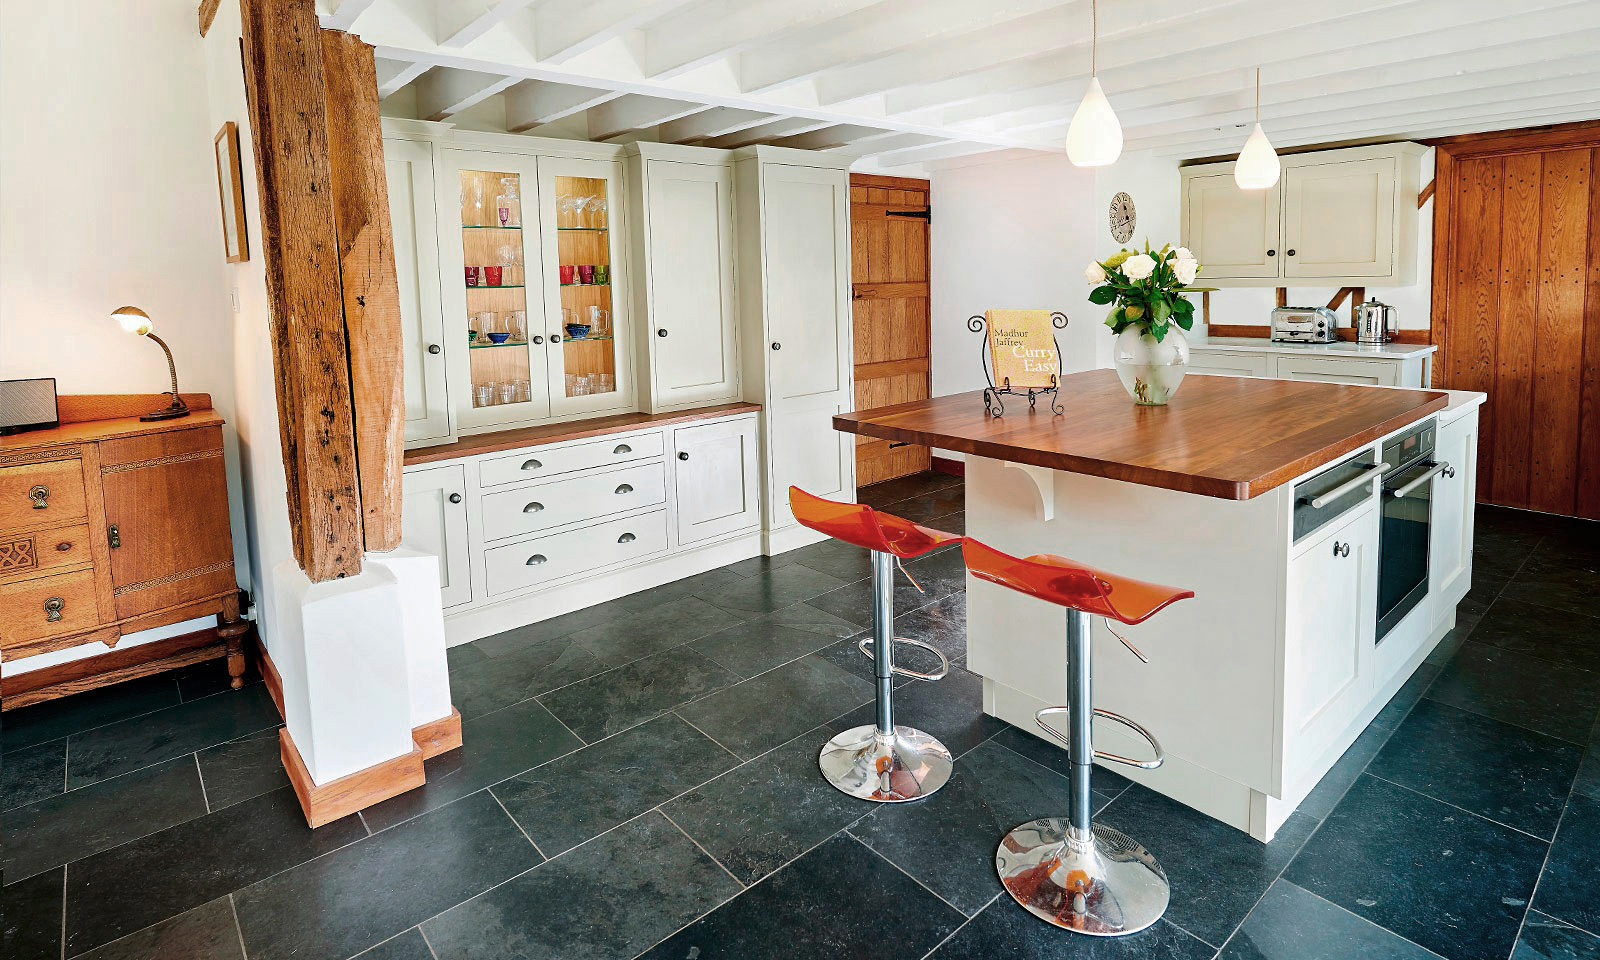 Golford. A classic handmade, hand-painted, Shaker style kitchen, installed in a large barn. A bespoke hand-crafted kitchen manufactured by the skilled cabinet makers at Mounts Hill Woodcraft.